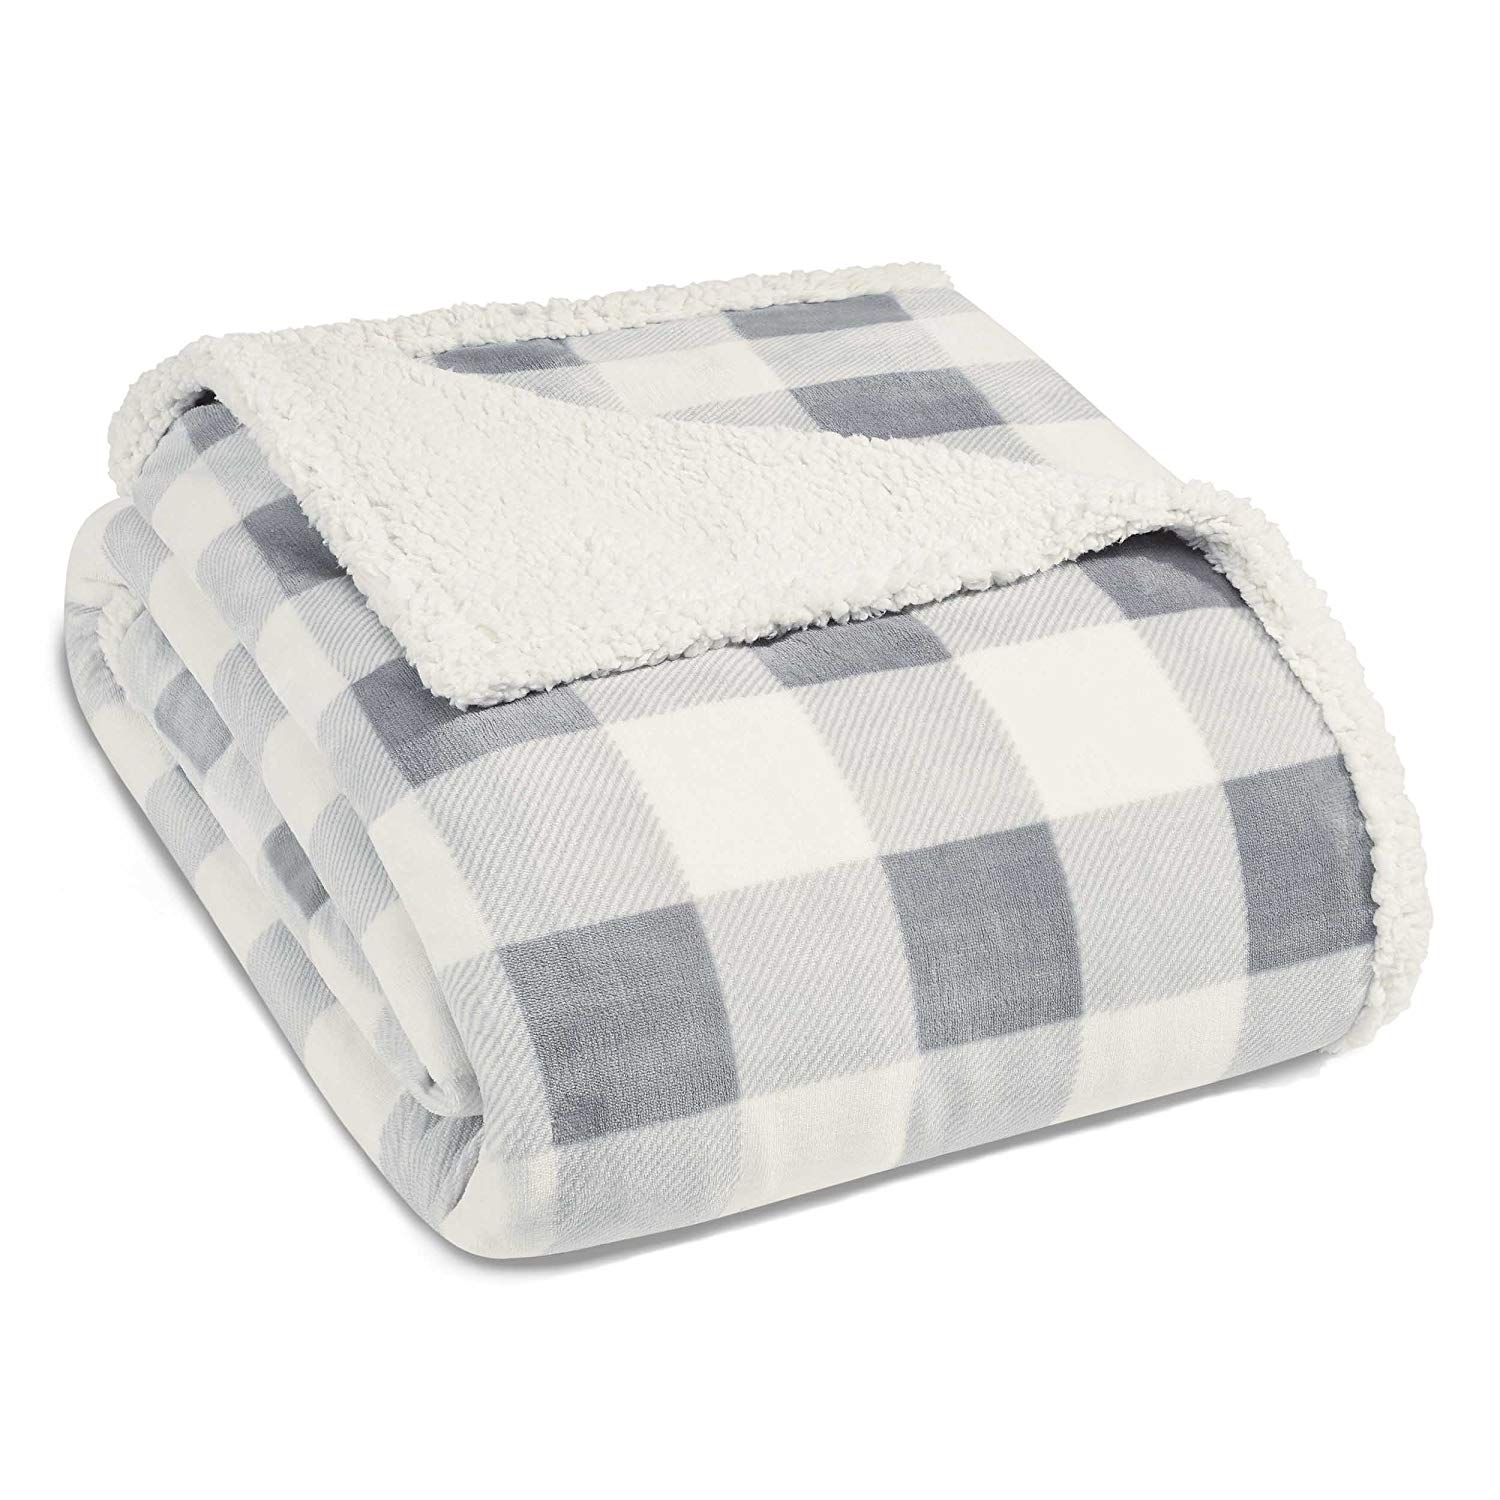 Favorite things gift ideas gray buffalo check throw